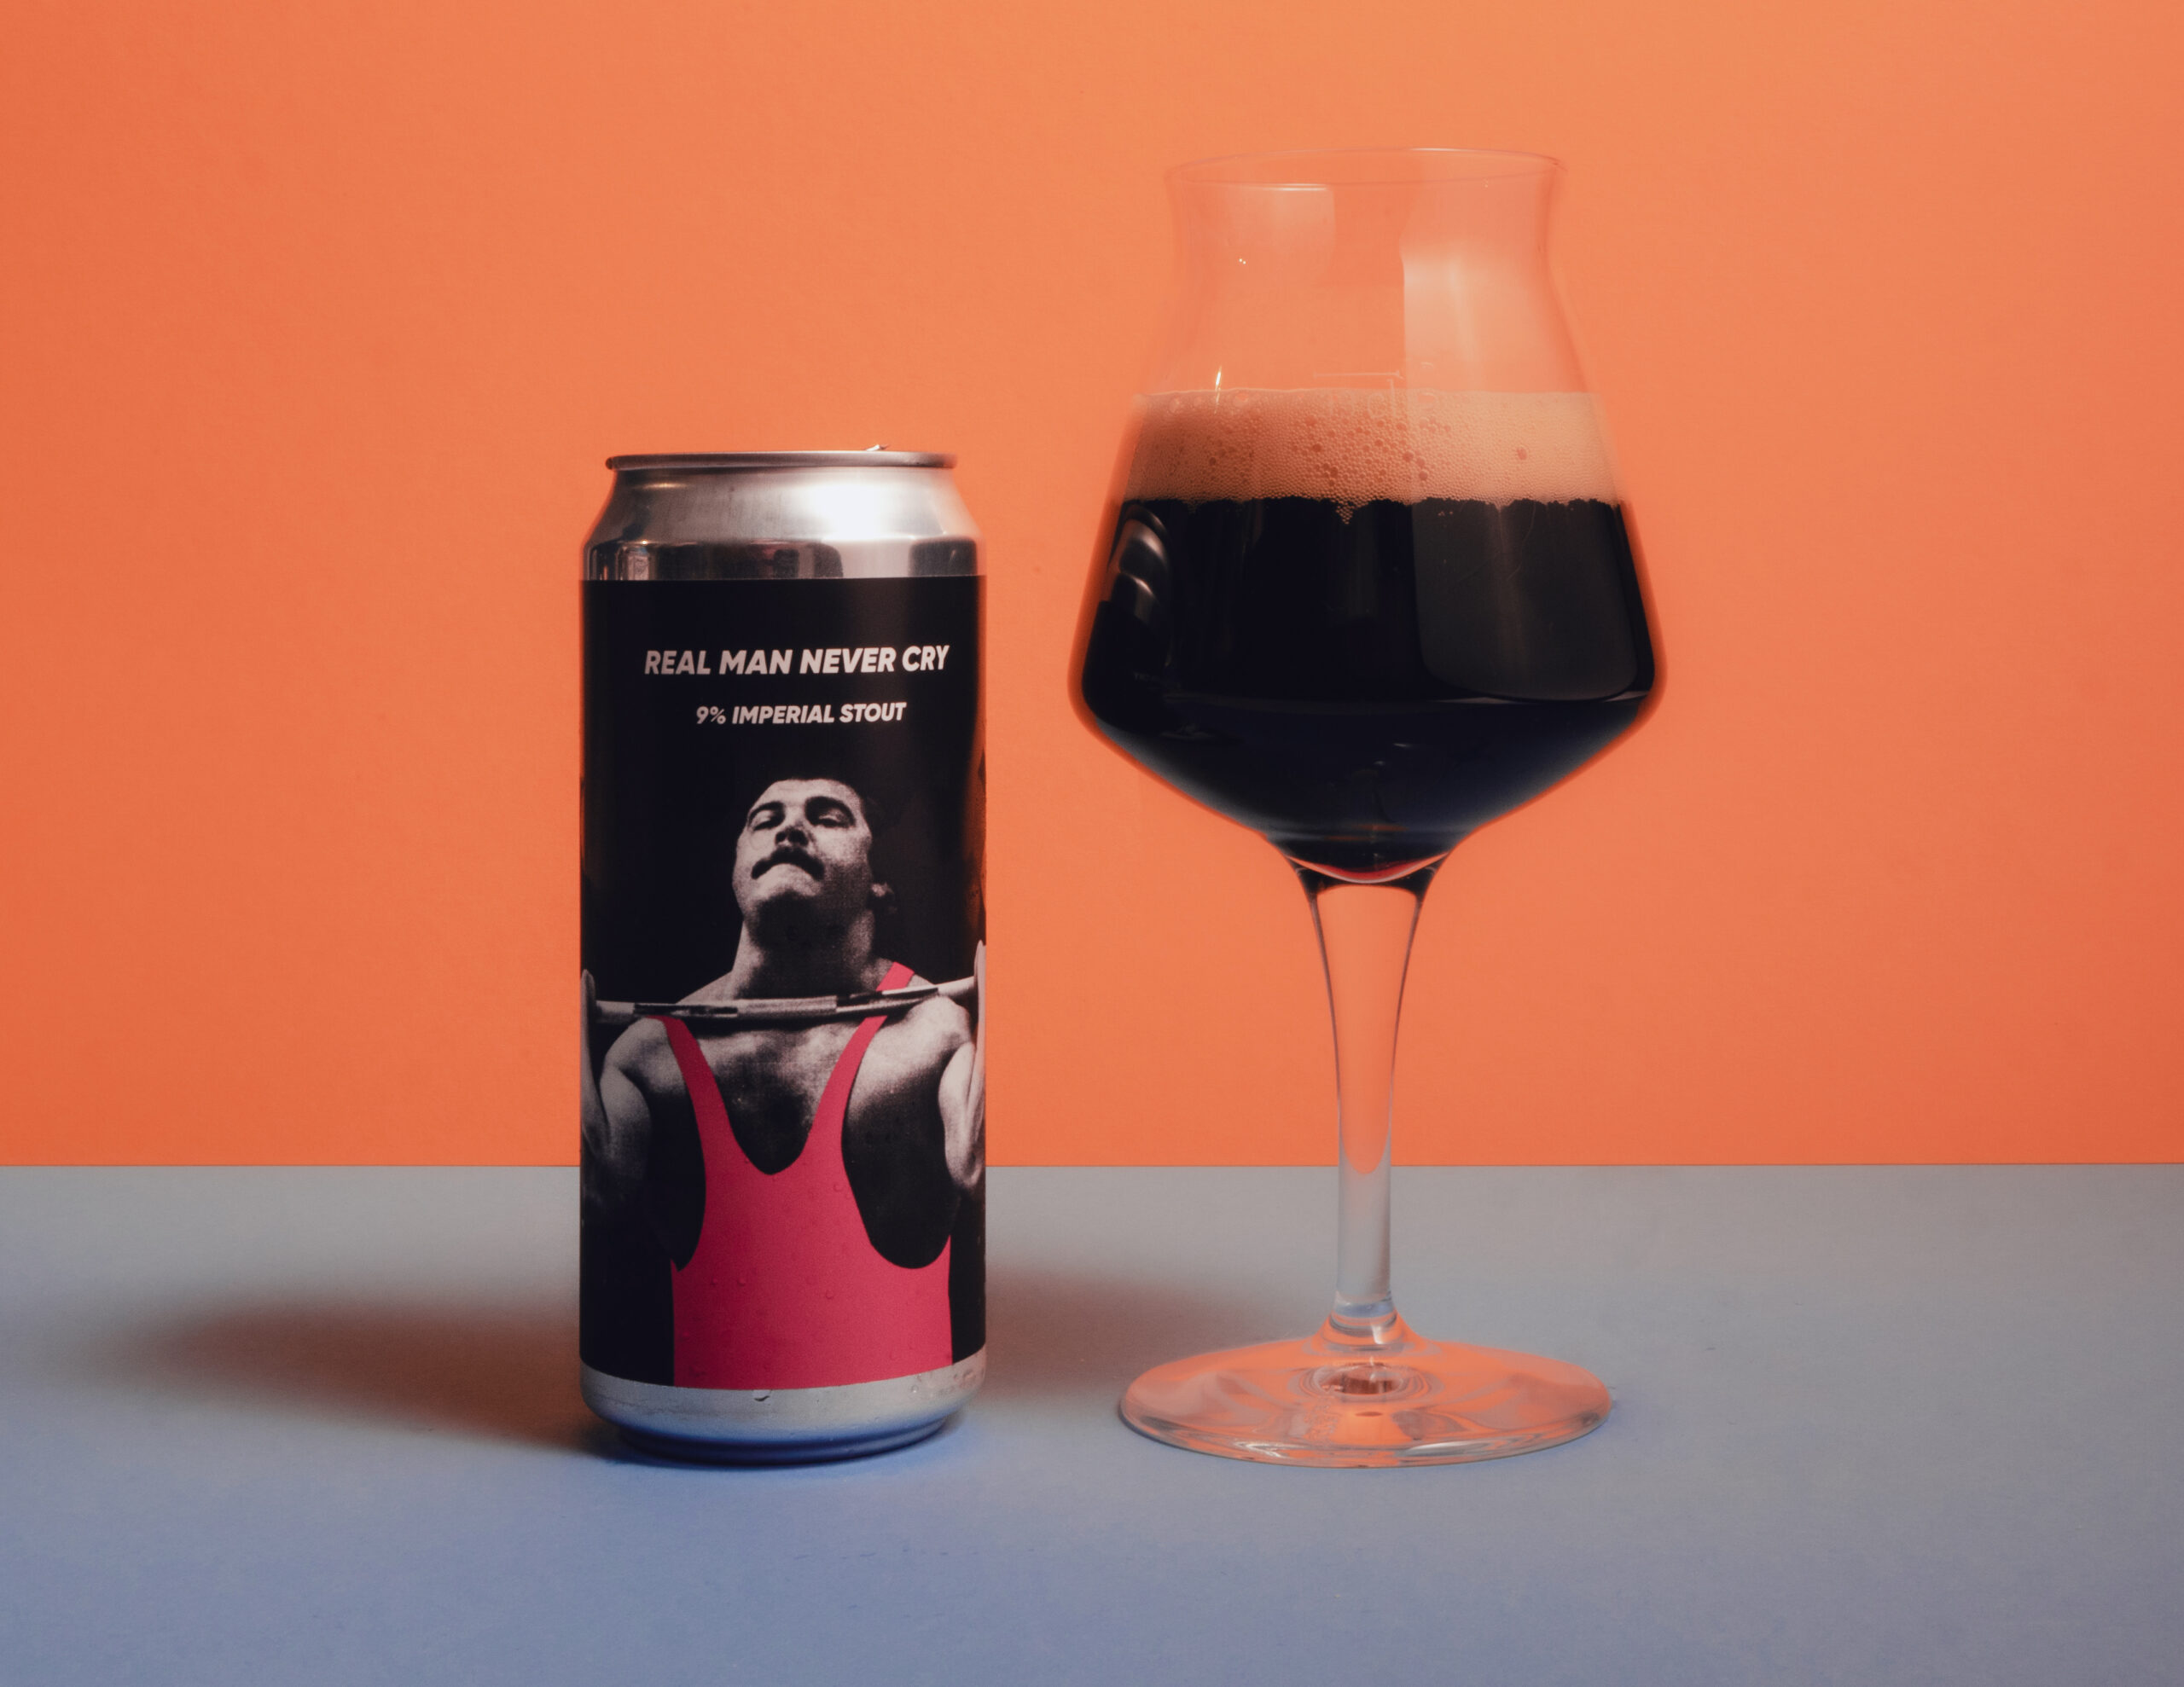 Real Man Never Cry - Rebel's Brewery